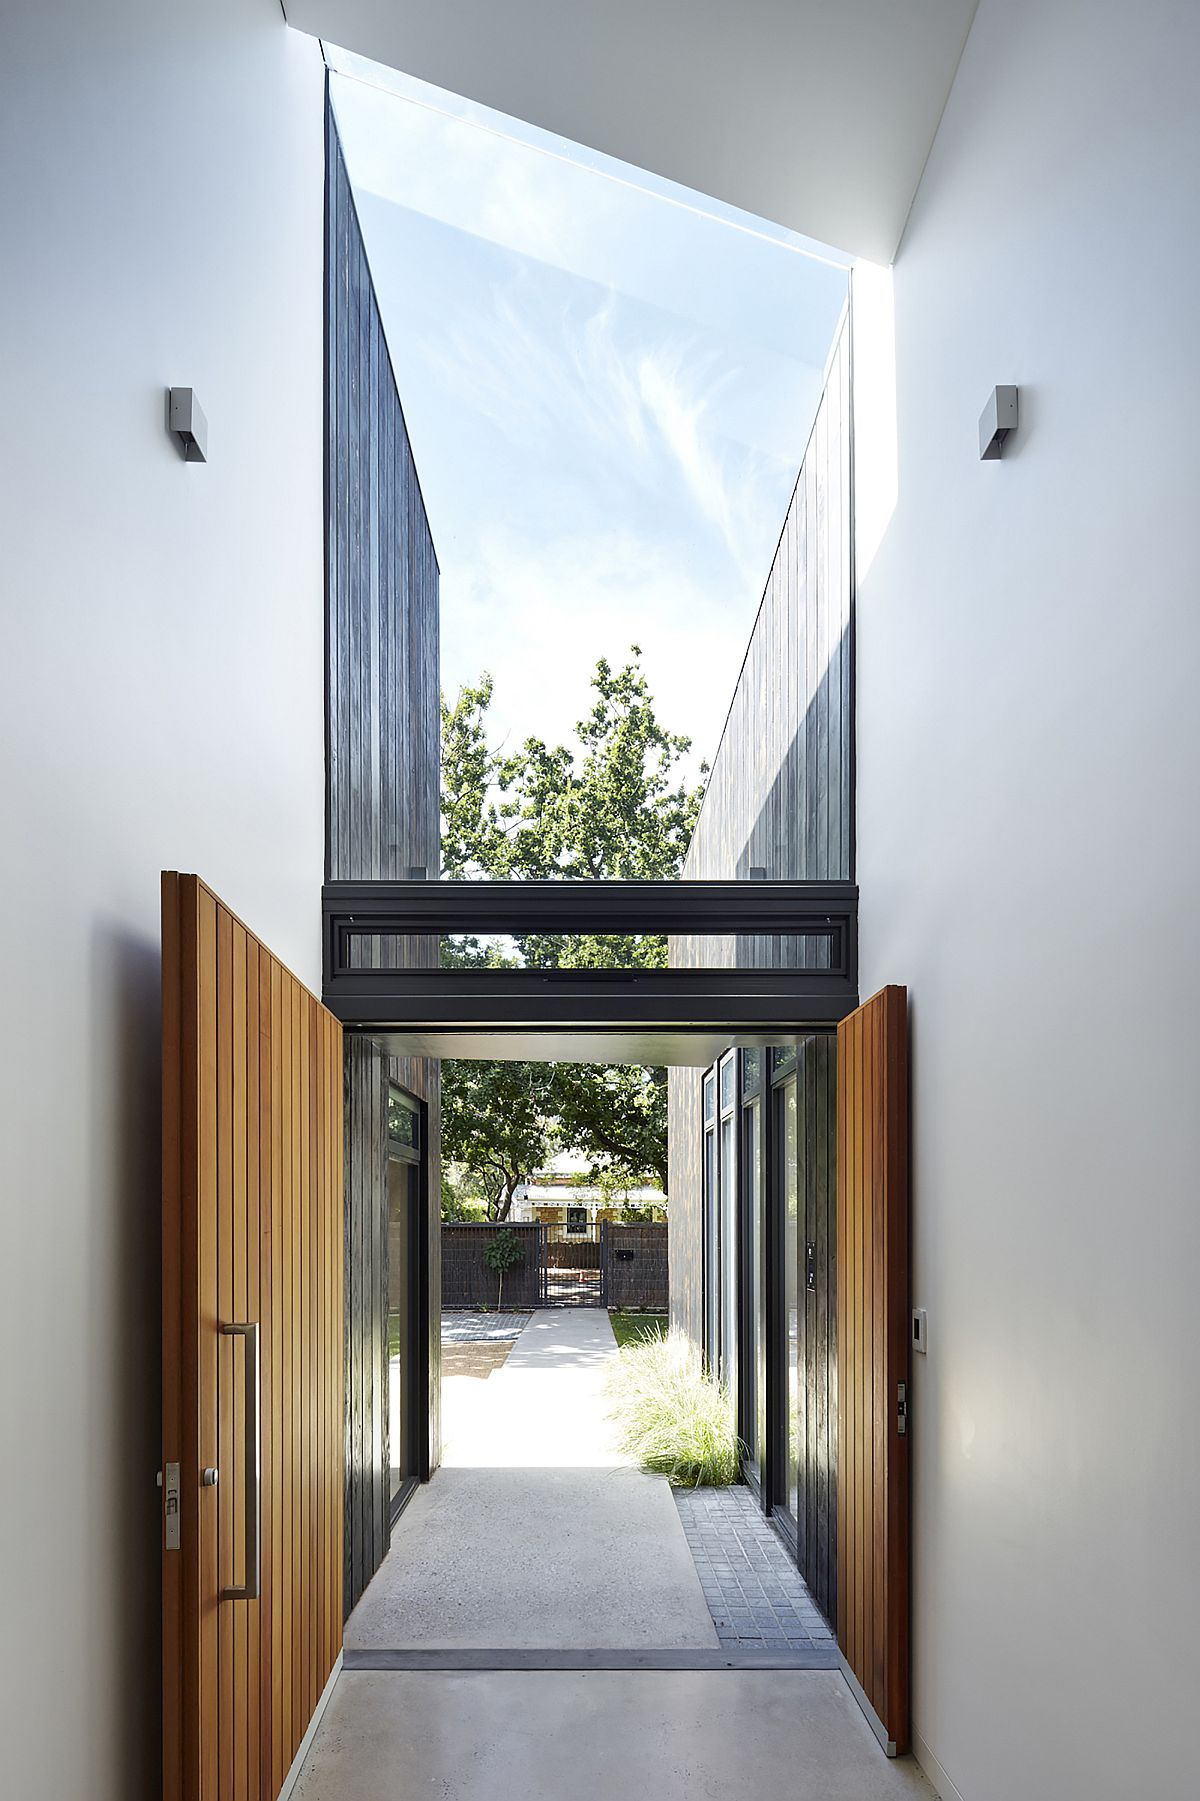 Spacious and stylish entrance of the house in white